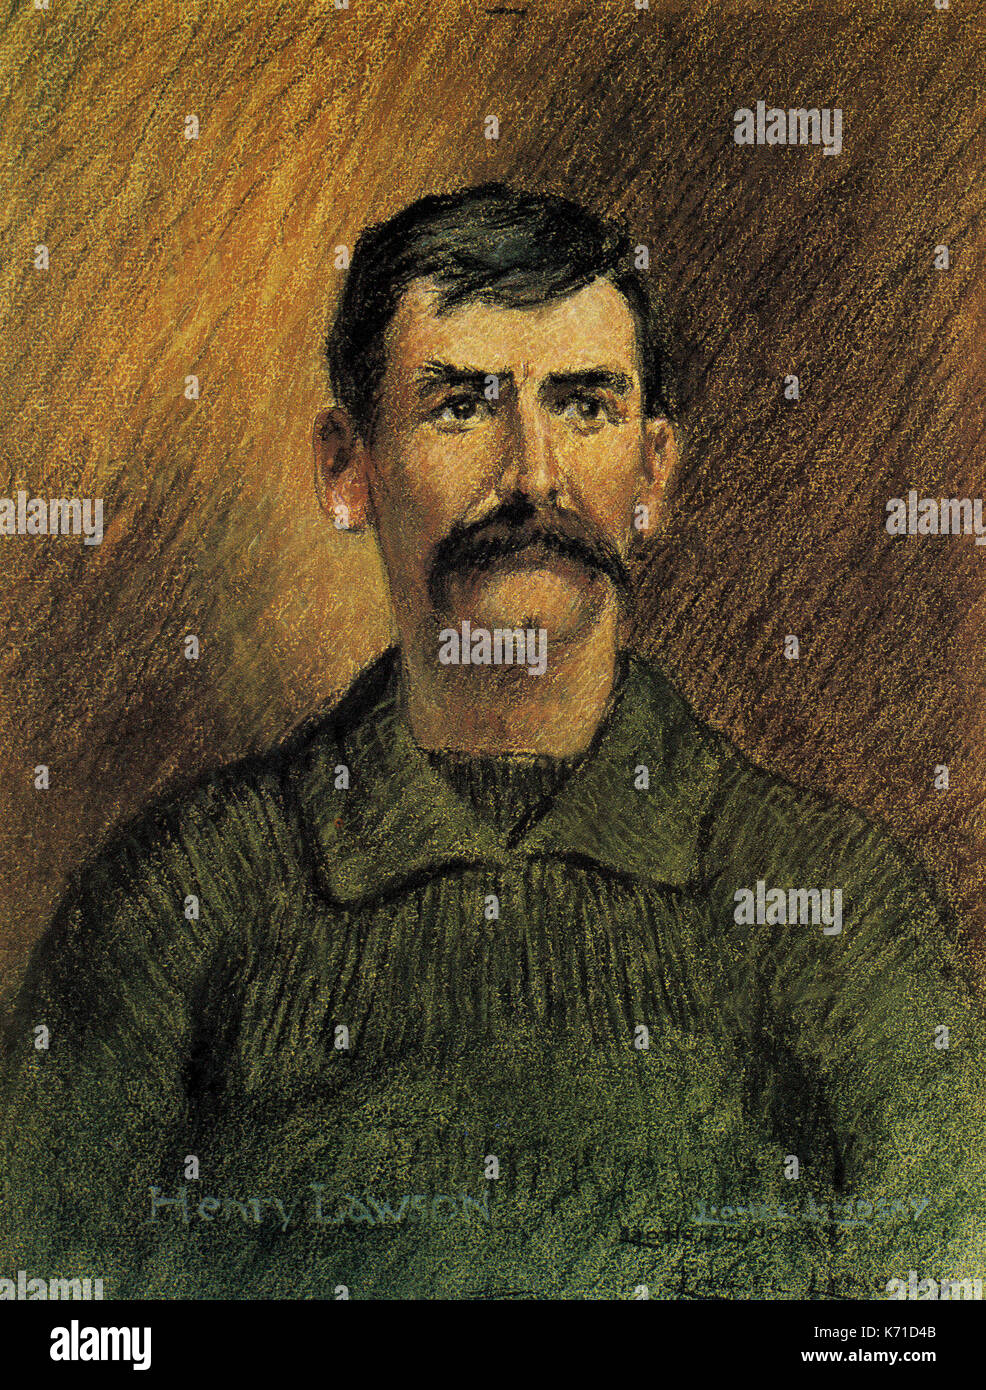 henry lawson Henry lawson was born on 17 june 1867 at grenfell, new south wales, the eldest child of louisa lawson and her husband niels hertzberg (peter) larsen, a norwegian.